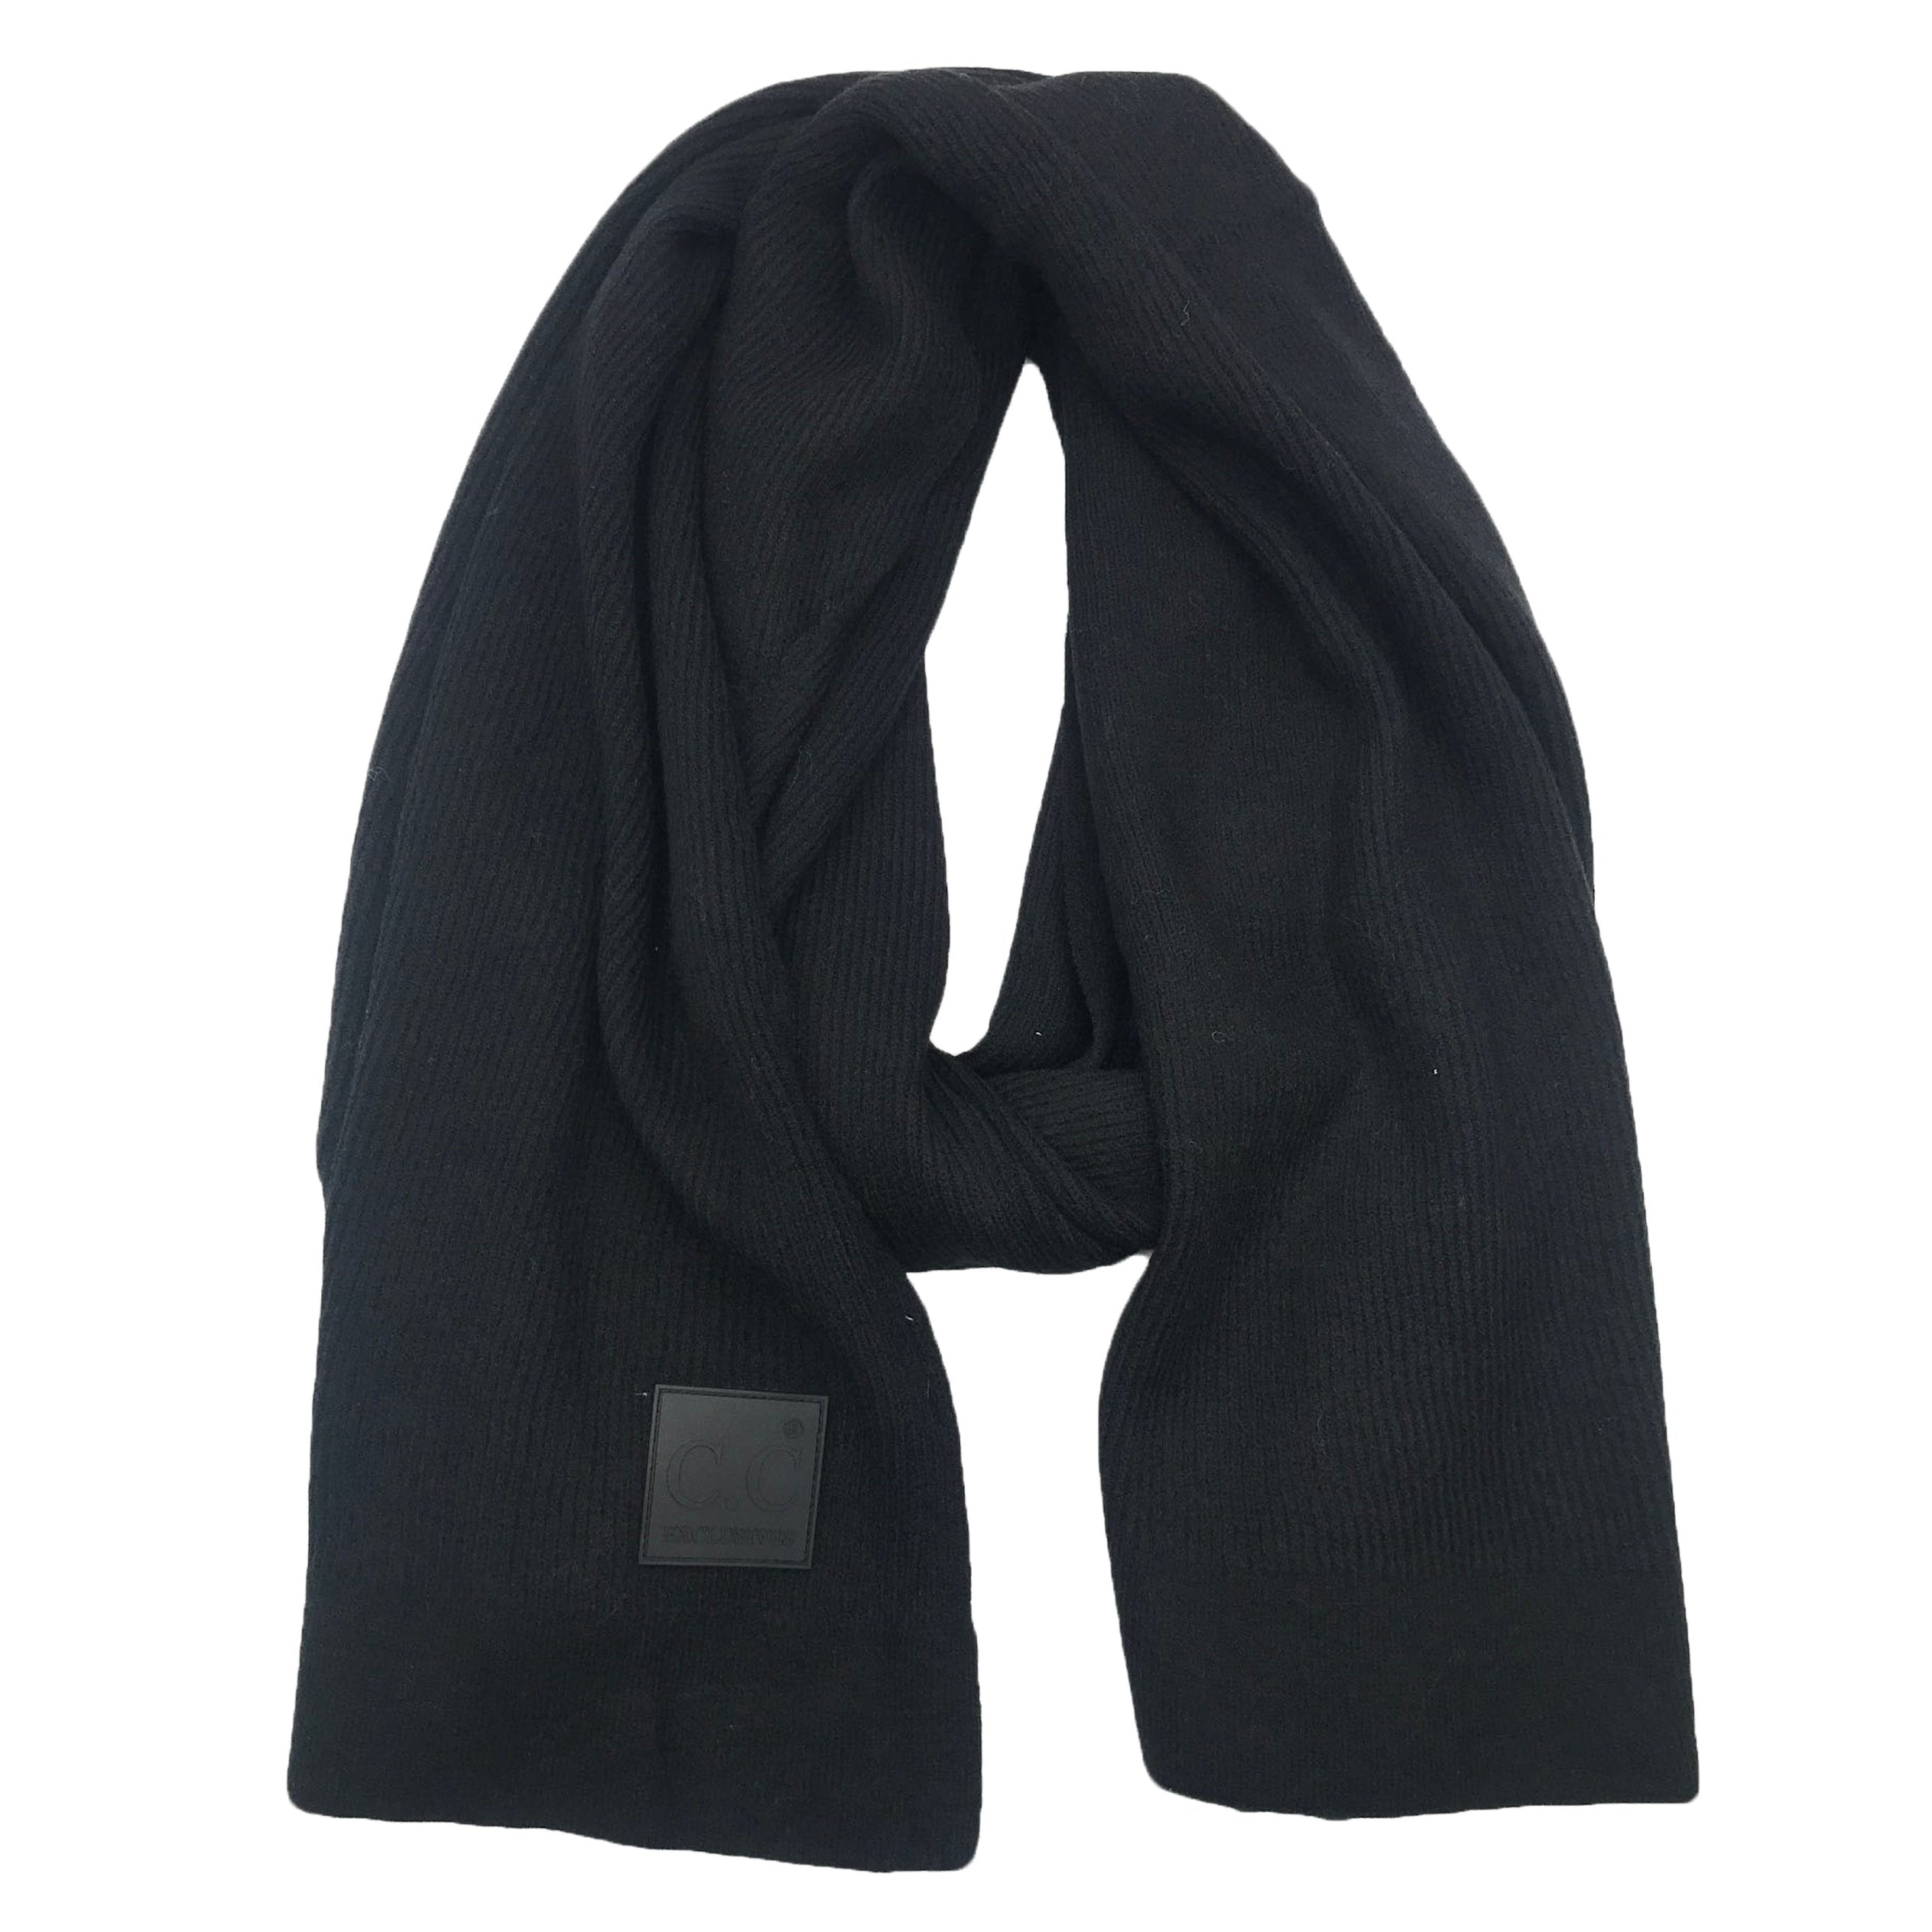 Scarf-7007 Rubber Patch Scarf Black